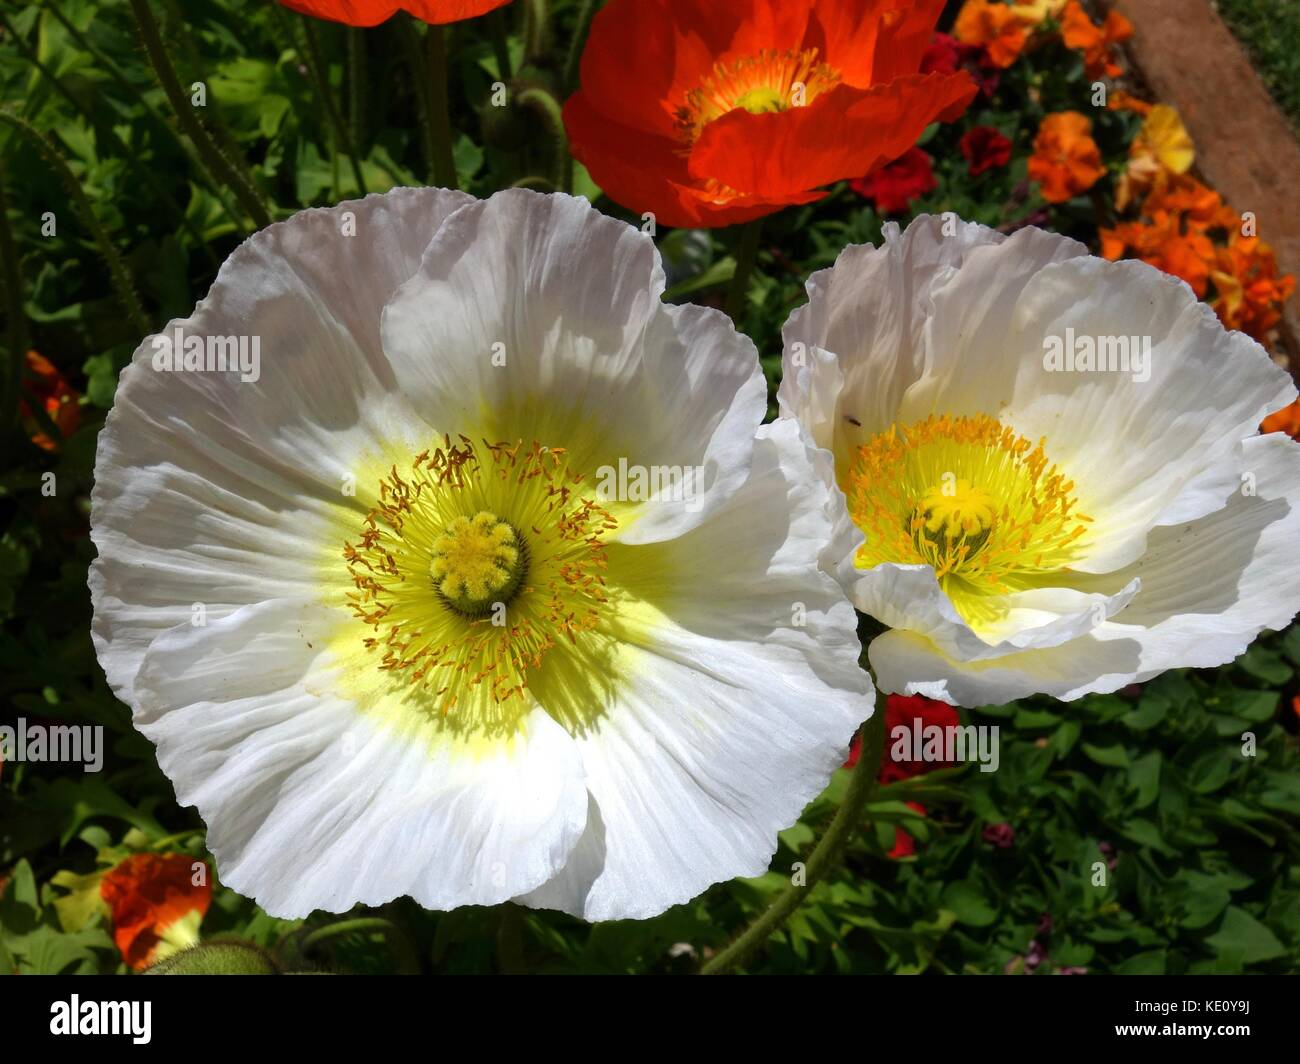 A closeup of two white poppies in a park in Australia on a bed of pansies - Stock Image